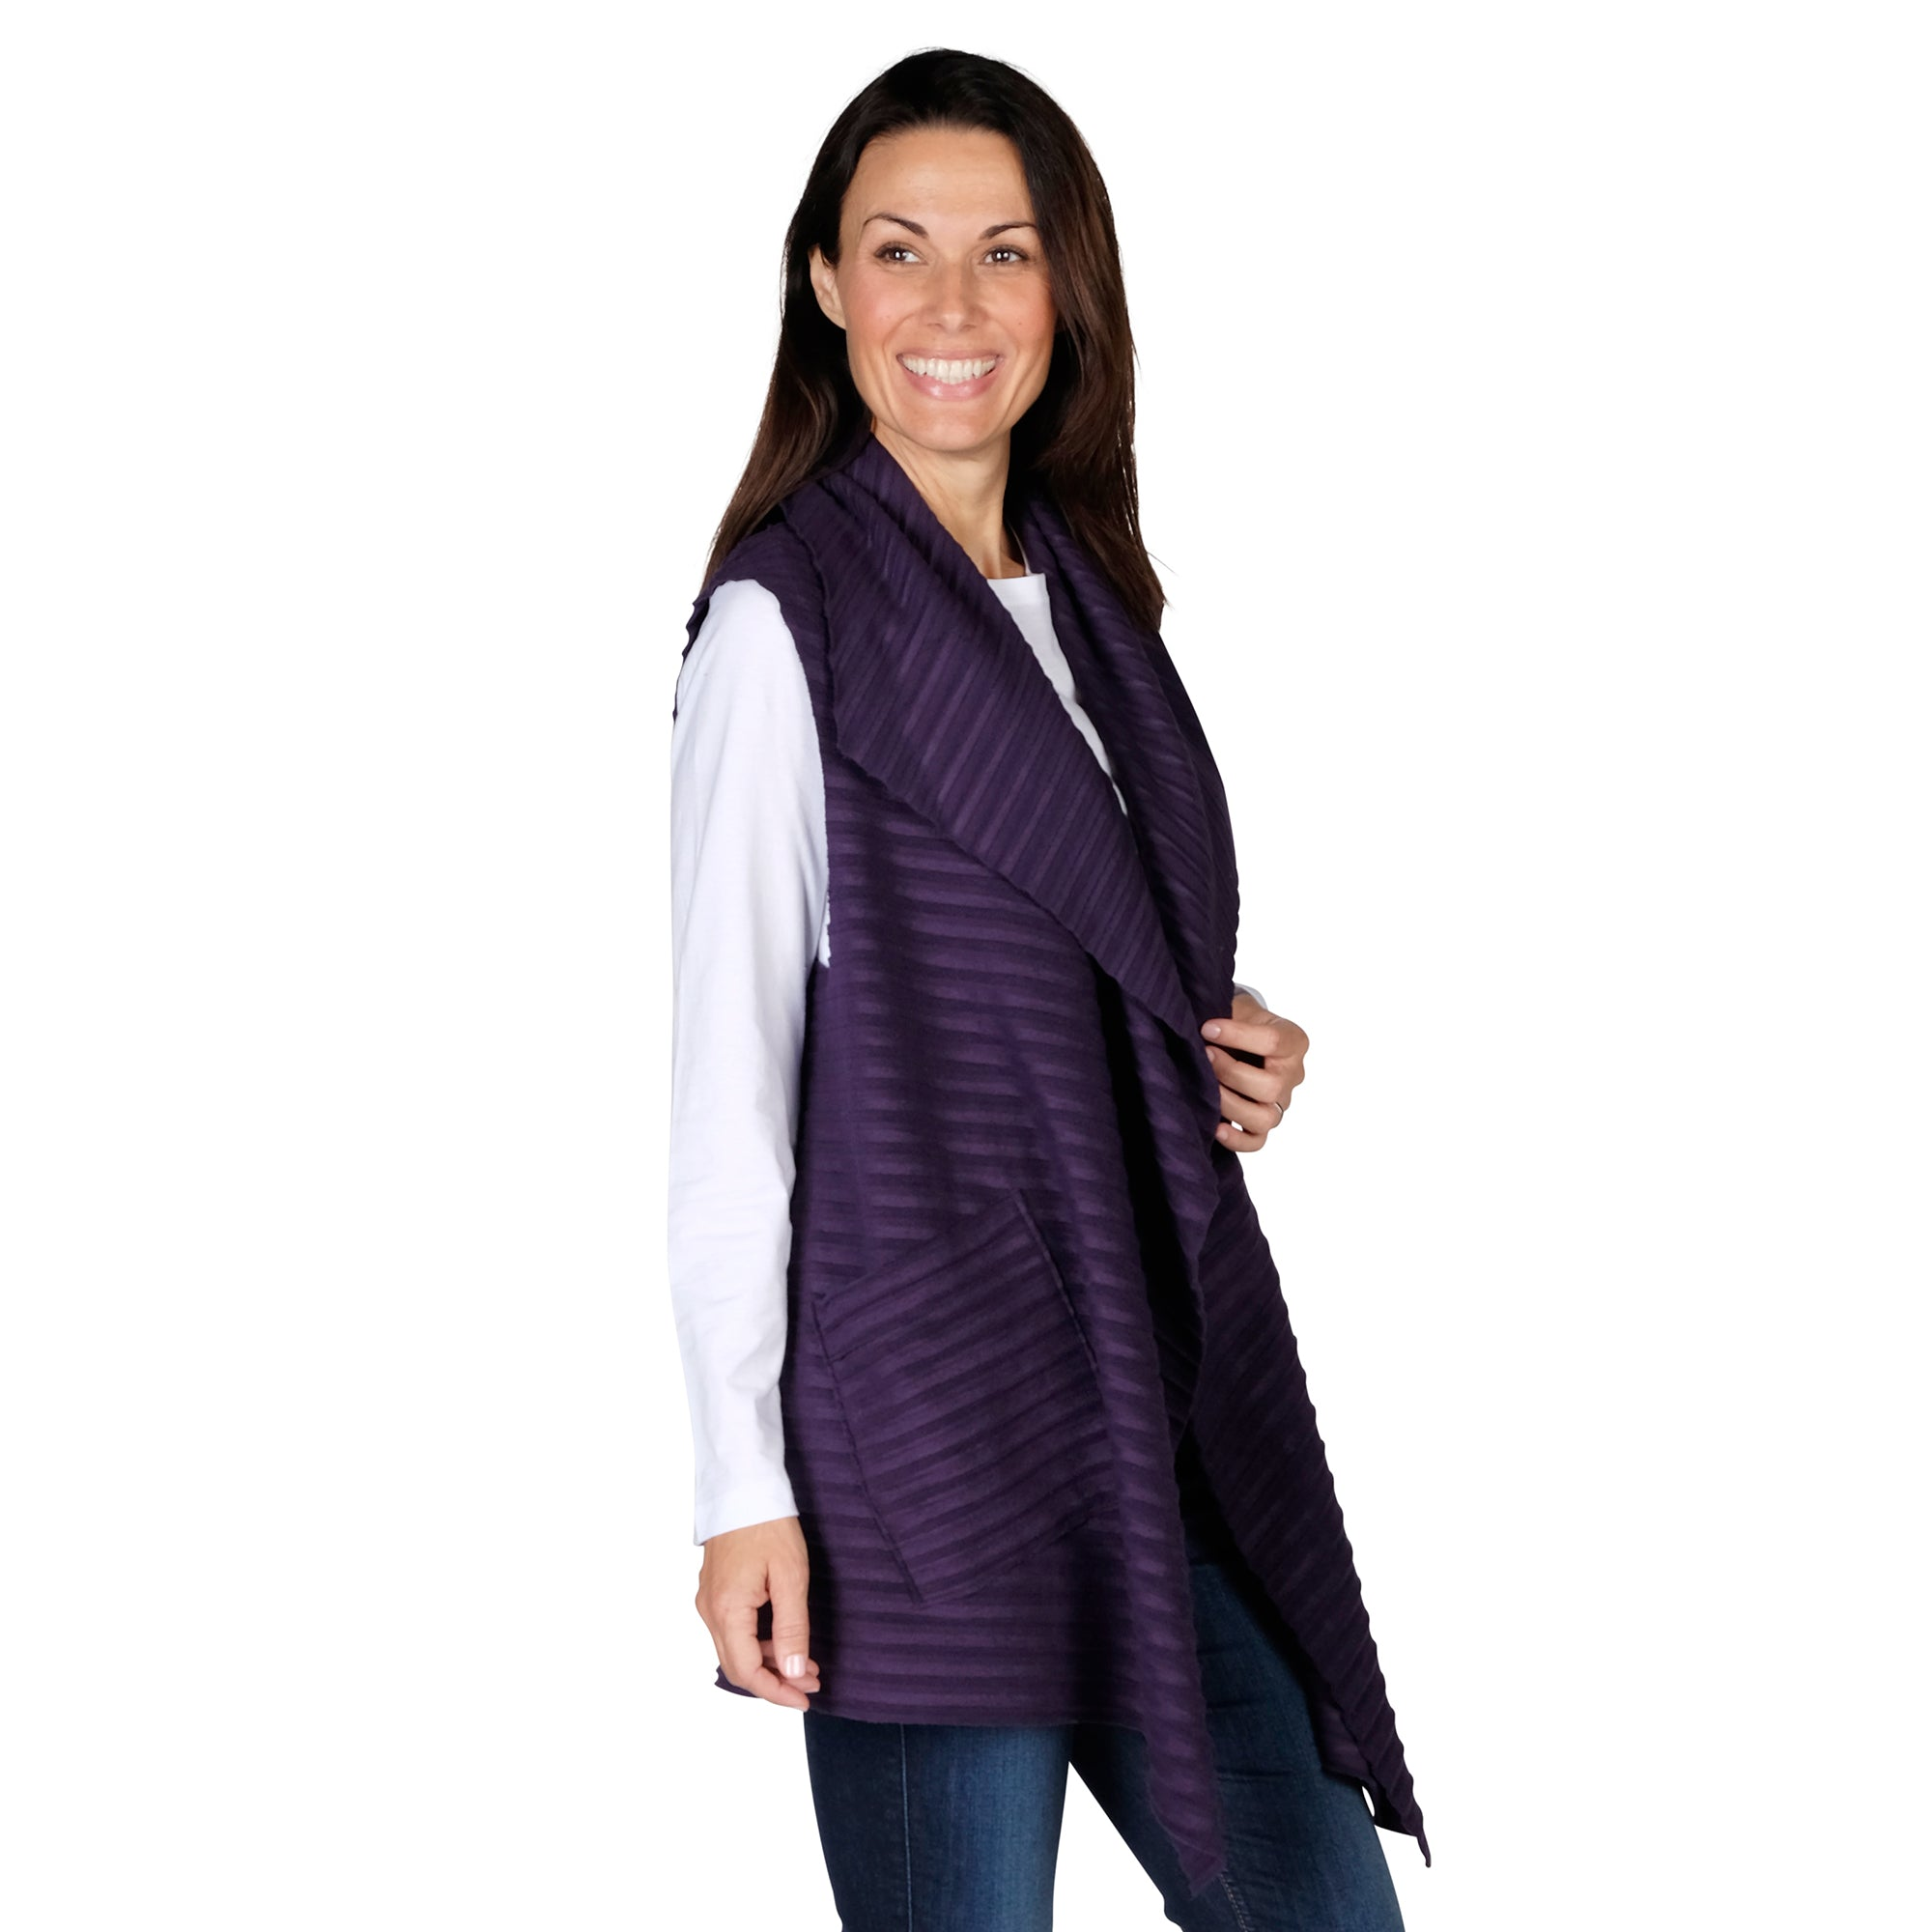 Le Moda Women's Sleeveless Pleated Open Front Fleece Vest Cardigan with Pockets at Linda Anderson. color_eggplant